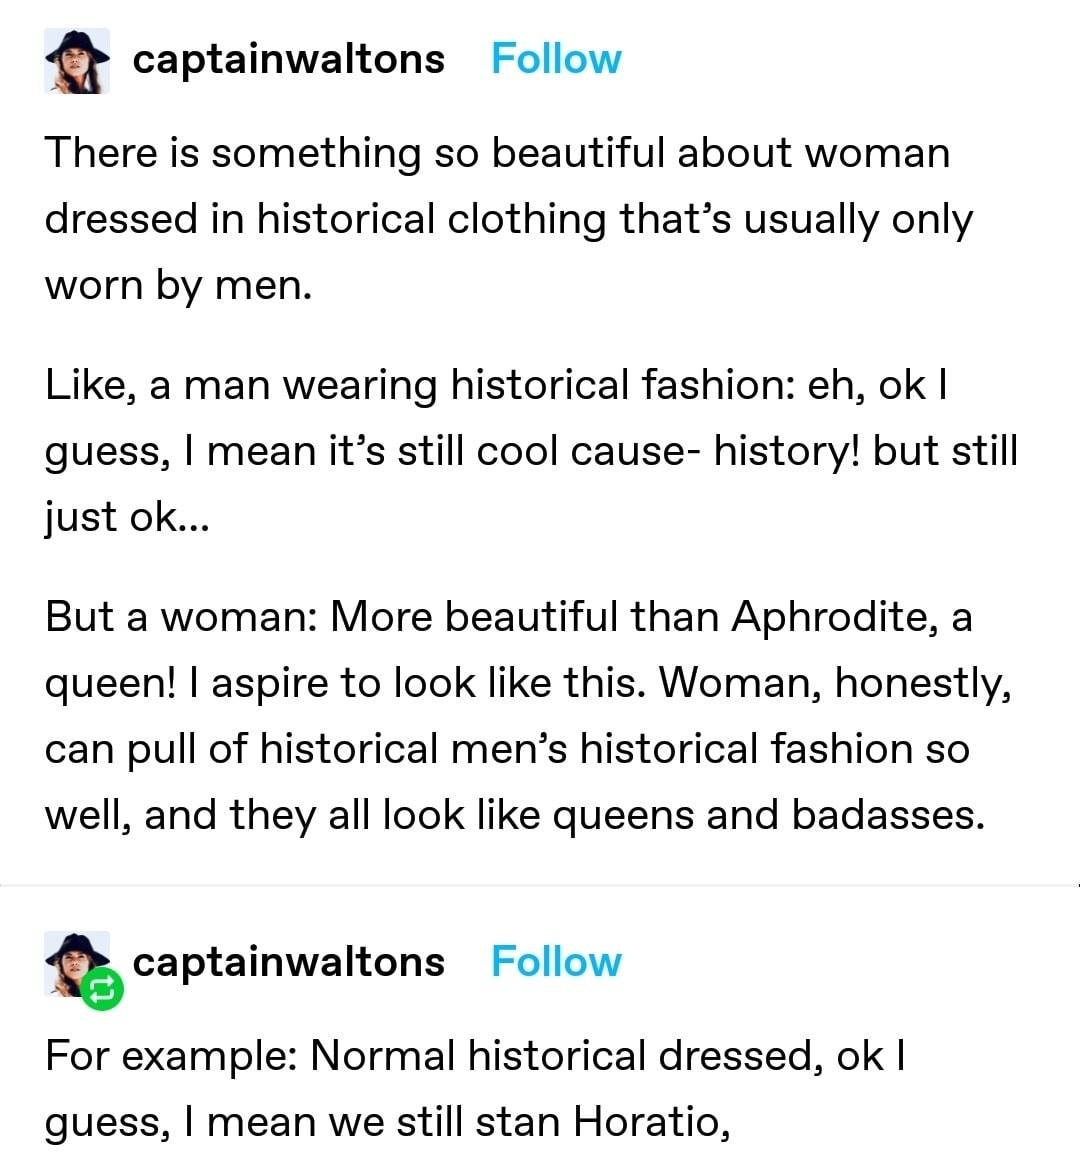 Women Wearing Traditionally Male Historical Clothing